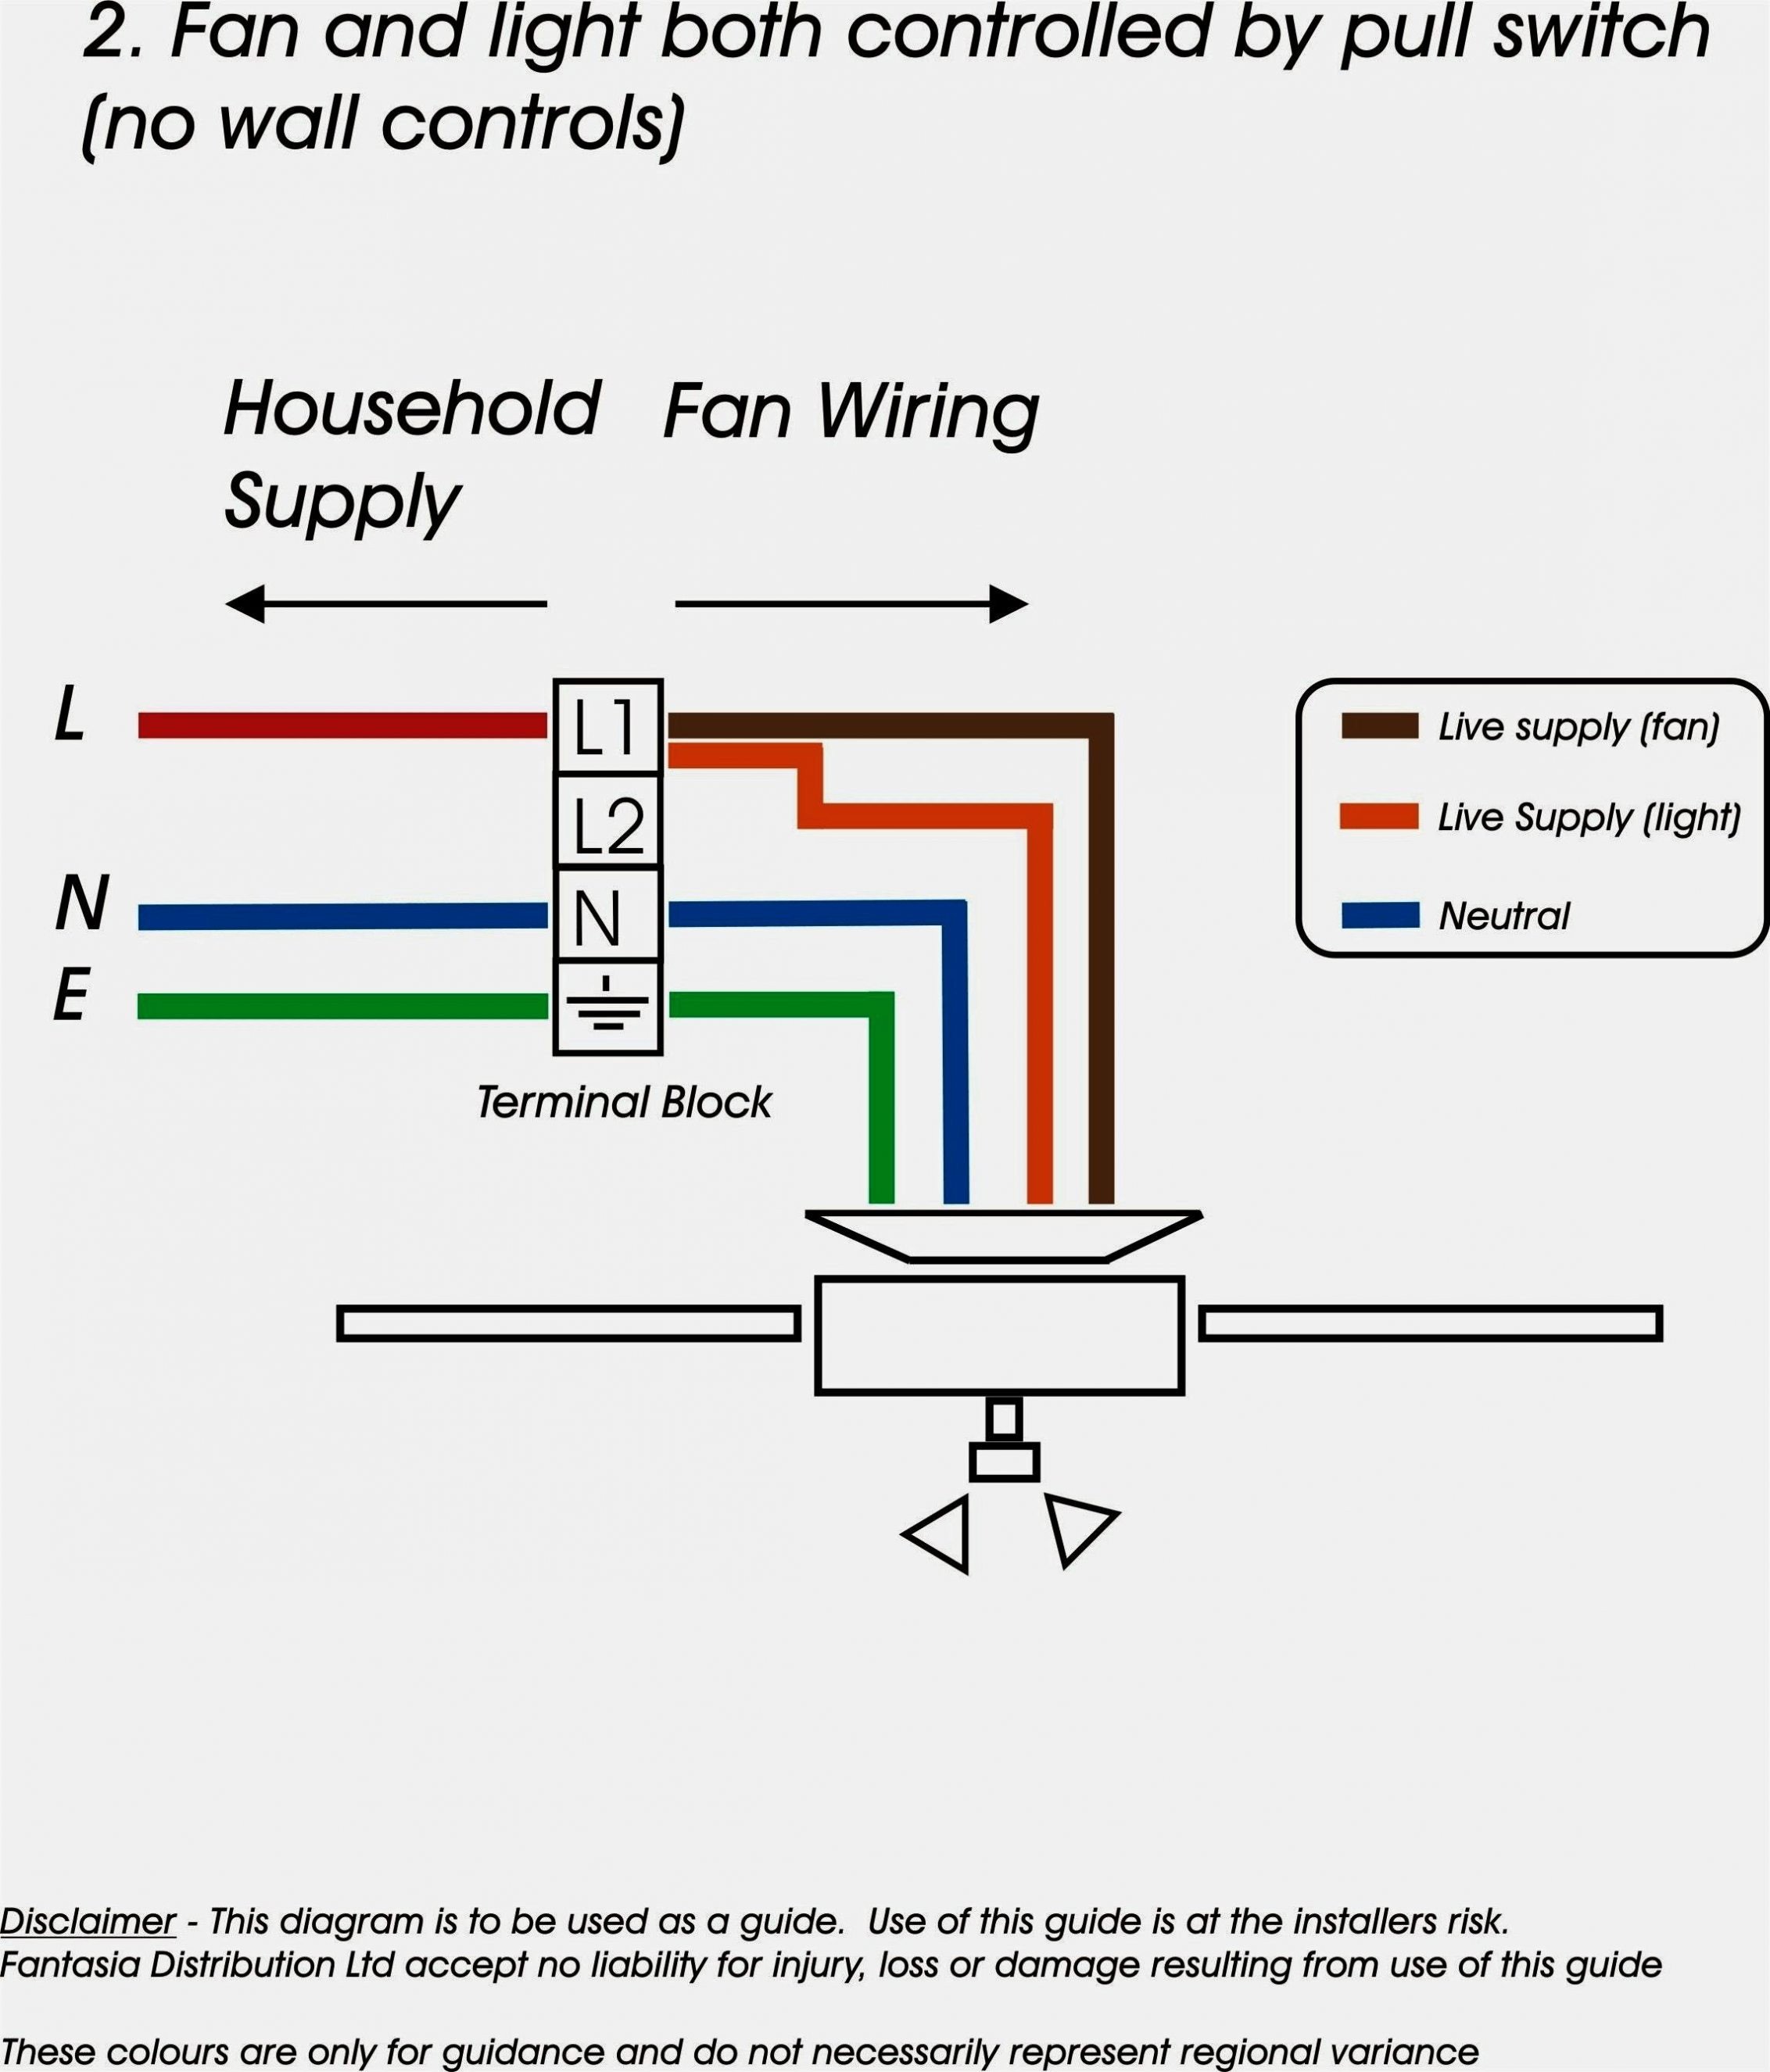 Leviton 1689 50 Wiring Diagram - King Quad 300 Wiring Diagram  sonycdx-wirings.au-delice-limousin.frBege Wiring Diagram - Bege Wiring Diagram Full Edition